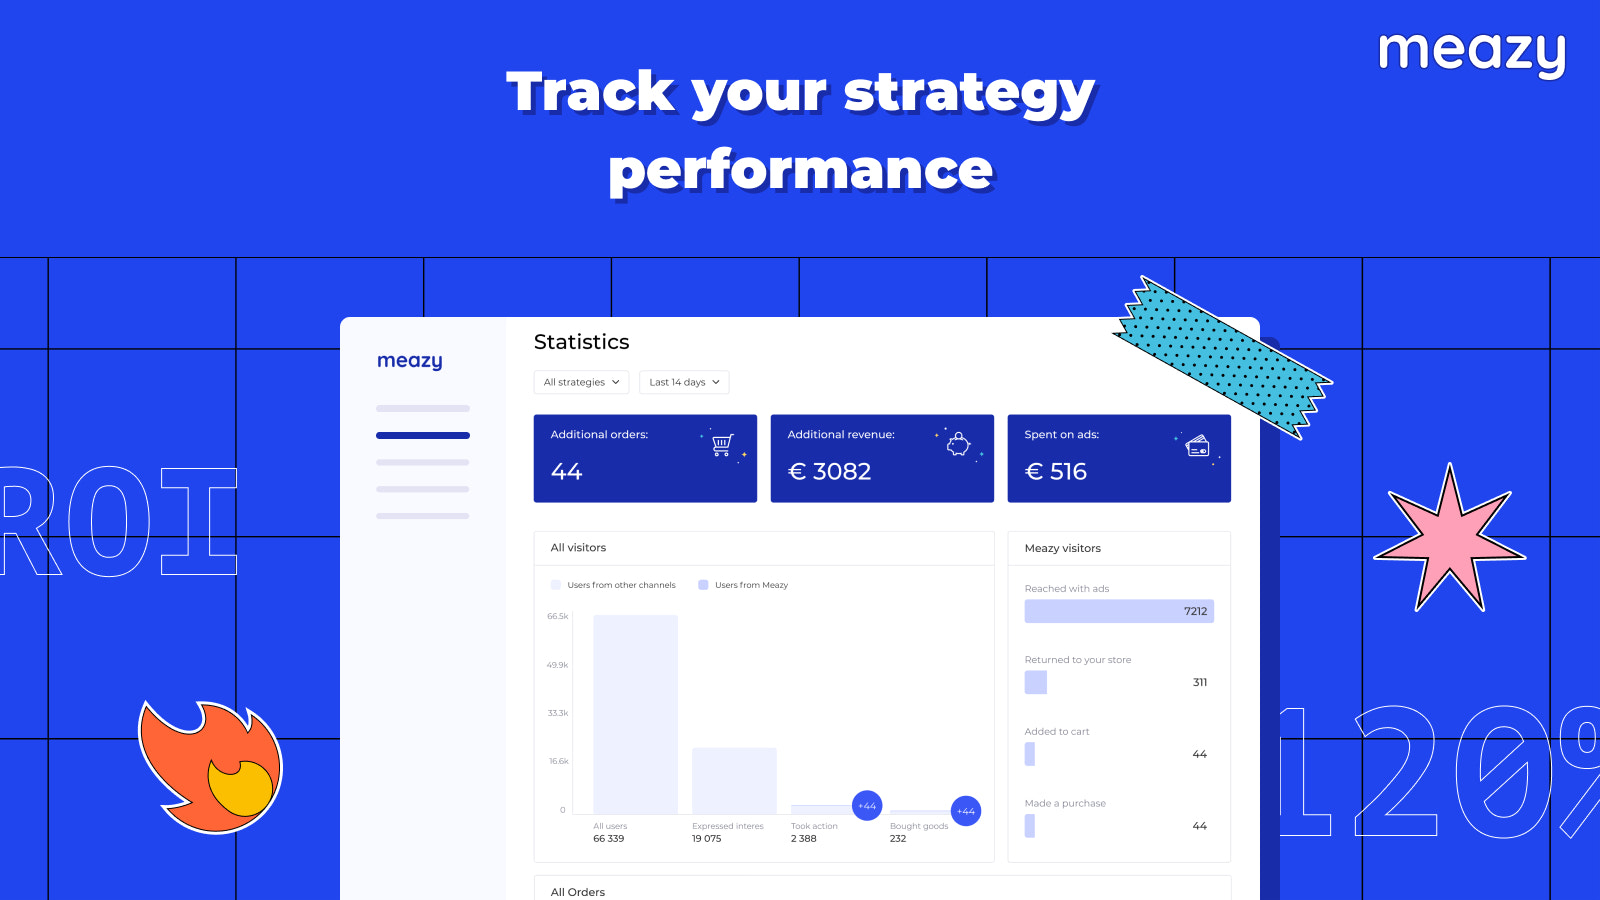 Track your strategy performance